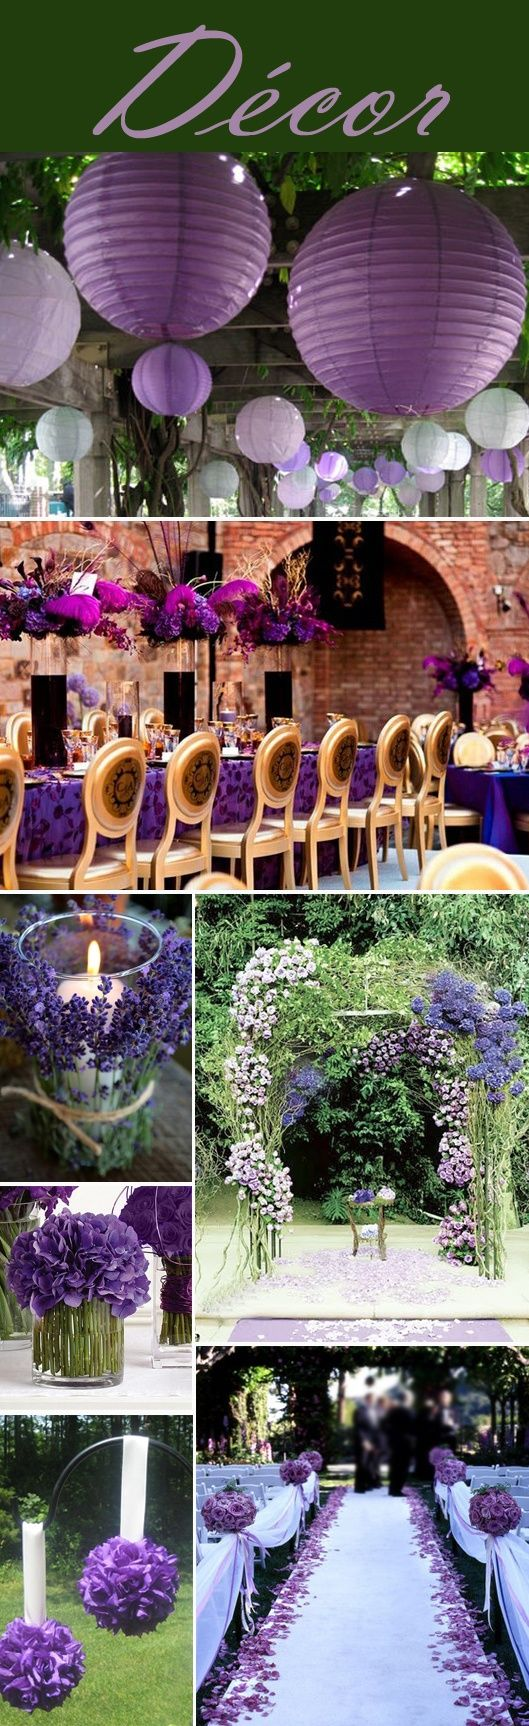 #Purple #wedding … Wedding #ideas for brides, grooms, parents & planners https://itunes.apple.com/us/app/the-gold-wedding-planner/id498112599?ls=1=8 … plus how to organise an entire wedding, within ANY budget ♥ The Gold Wedding Planner iPhone #App ♥ For more inspiration http://pinterest.com/groomsandbrides/boards/ #same #sex #wedding #gay #lesbian #wedding